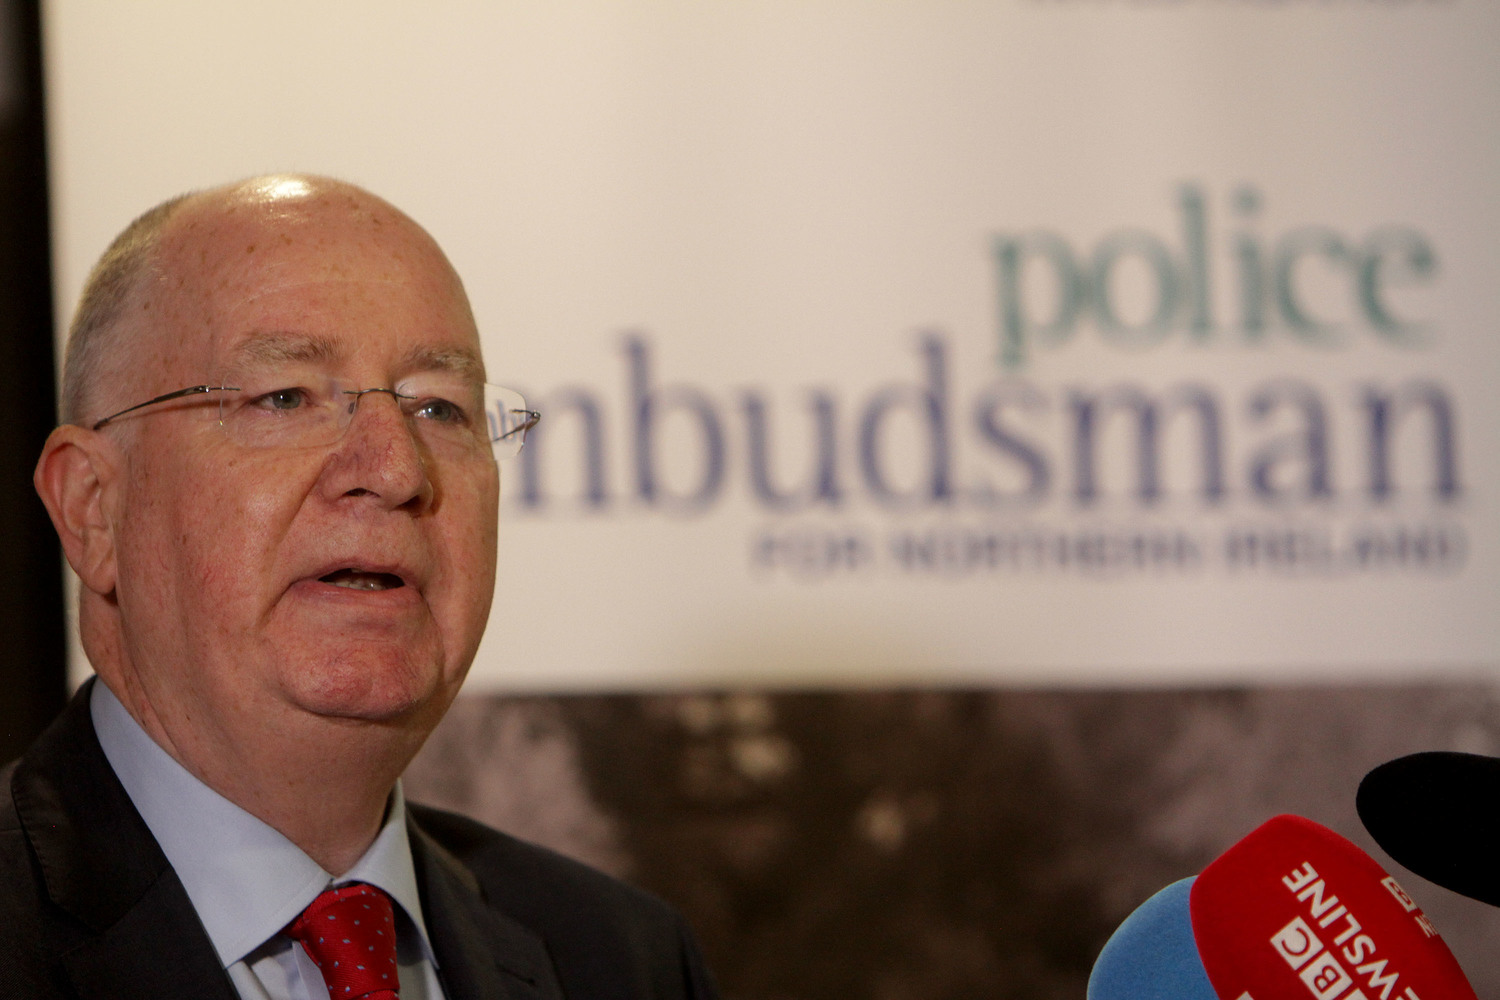 The current Police Ombudsman for Northern Ireland is Dr Michael Maguire.